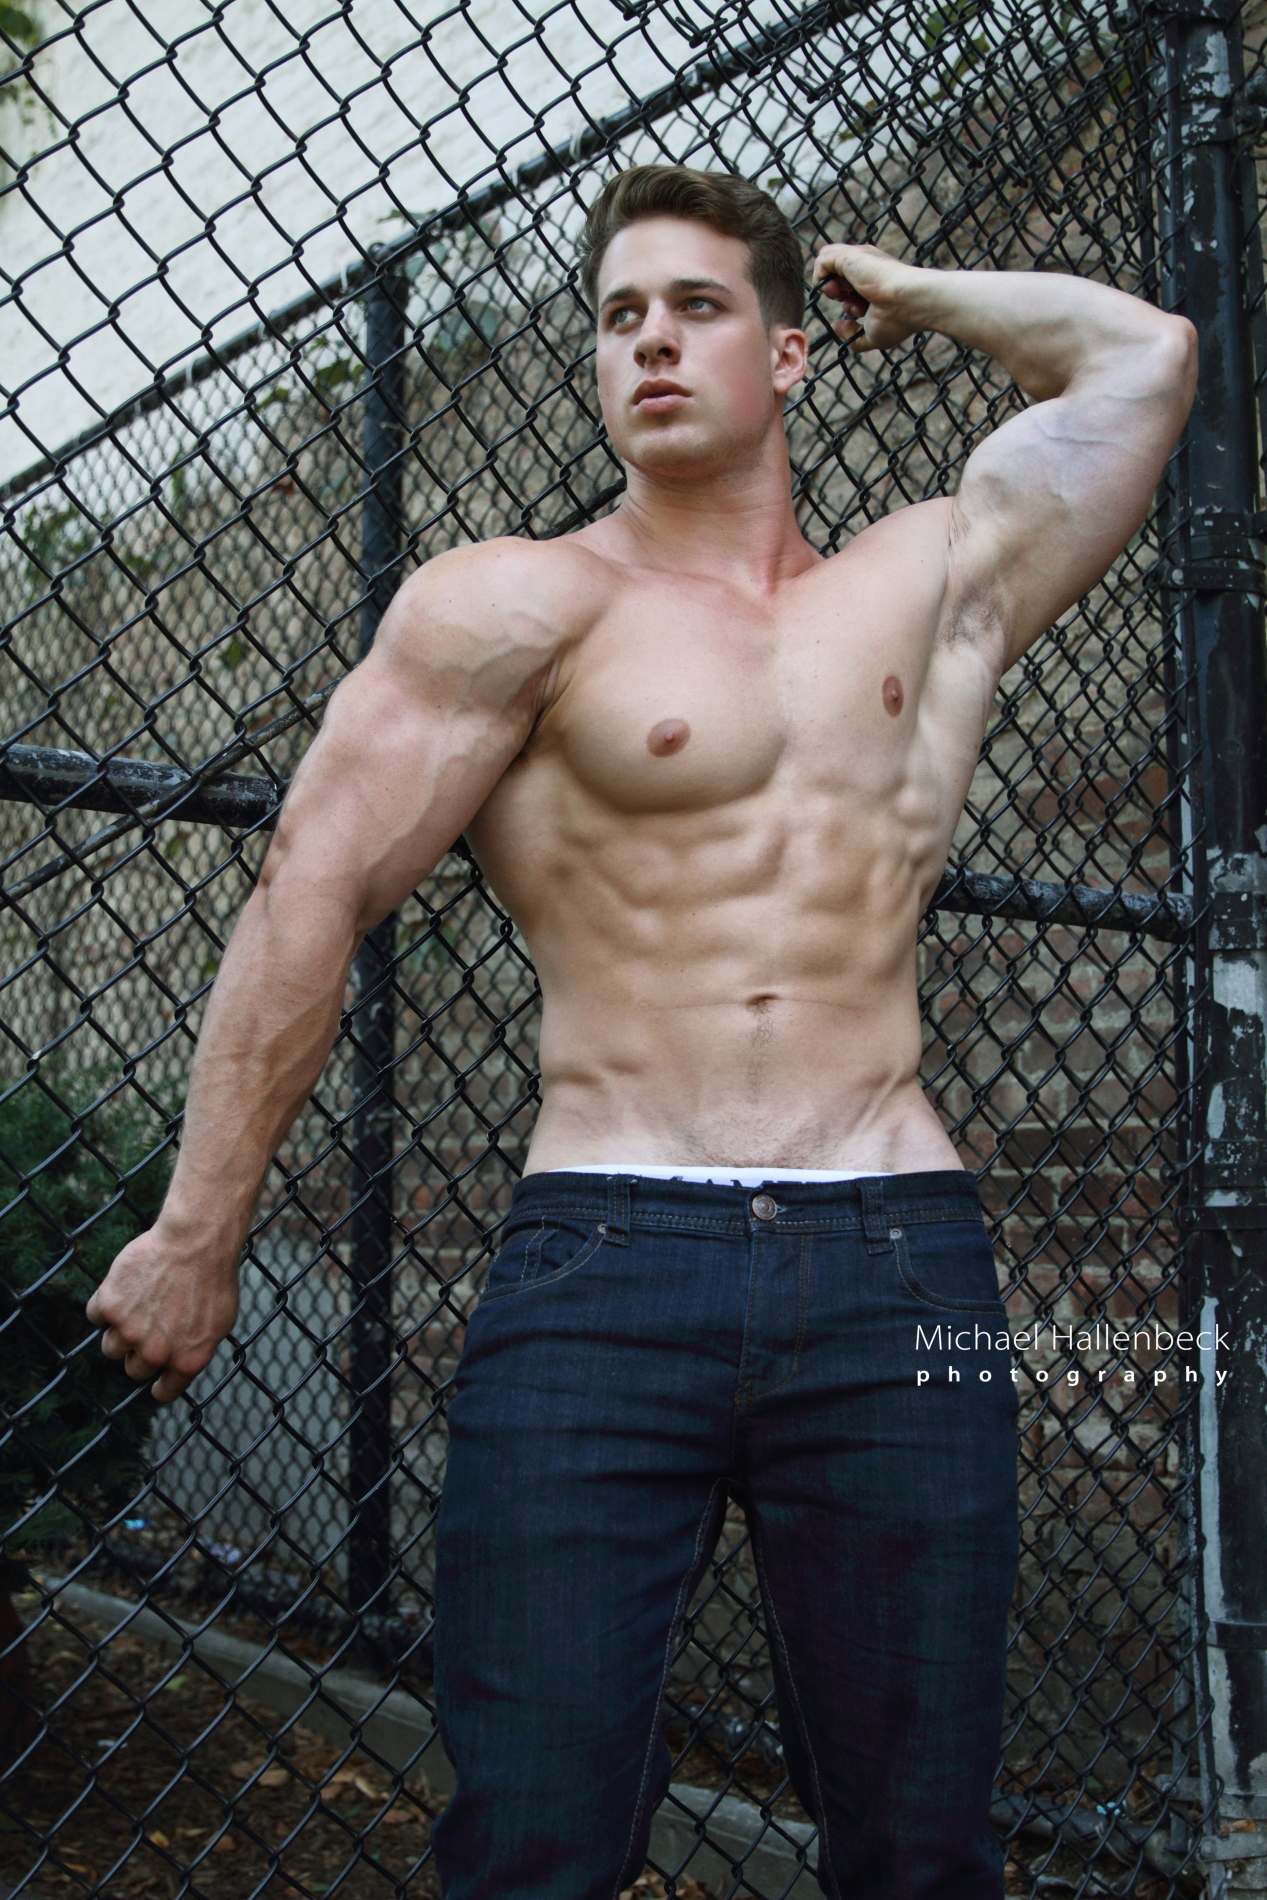 nick-sandell-by-michael-hallenbeck-pnv-network2